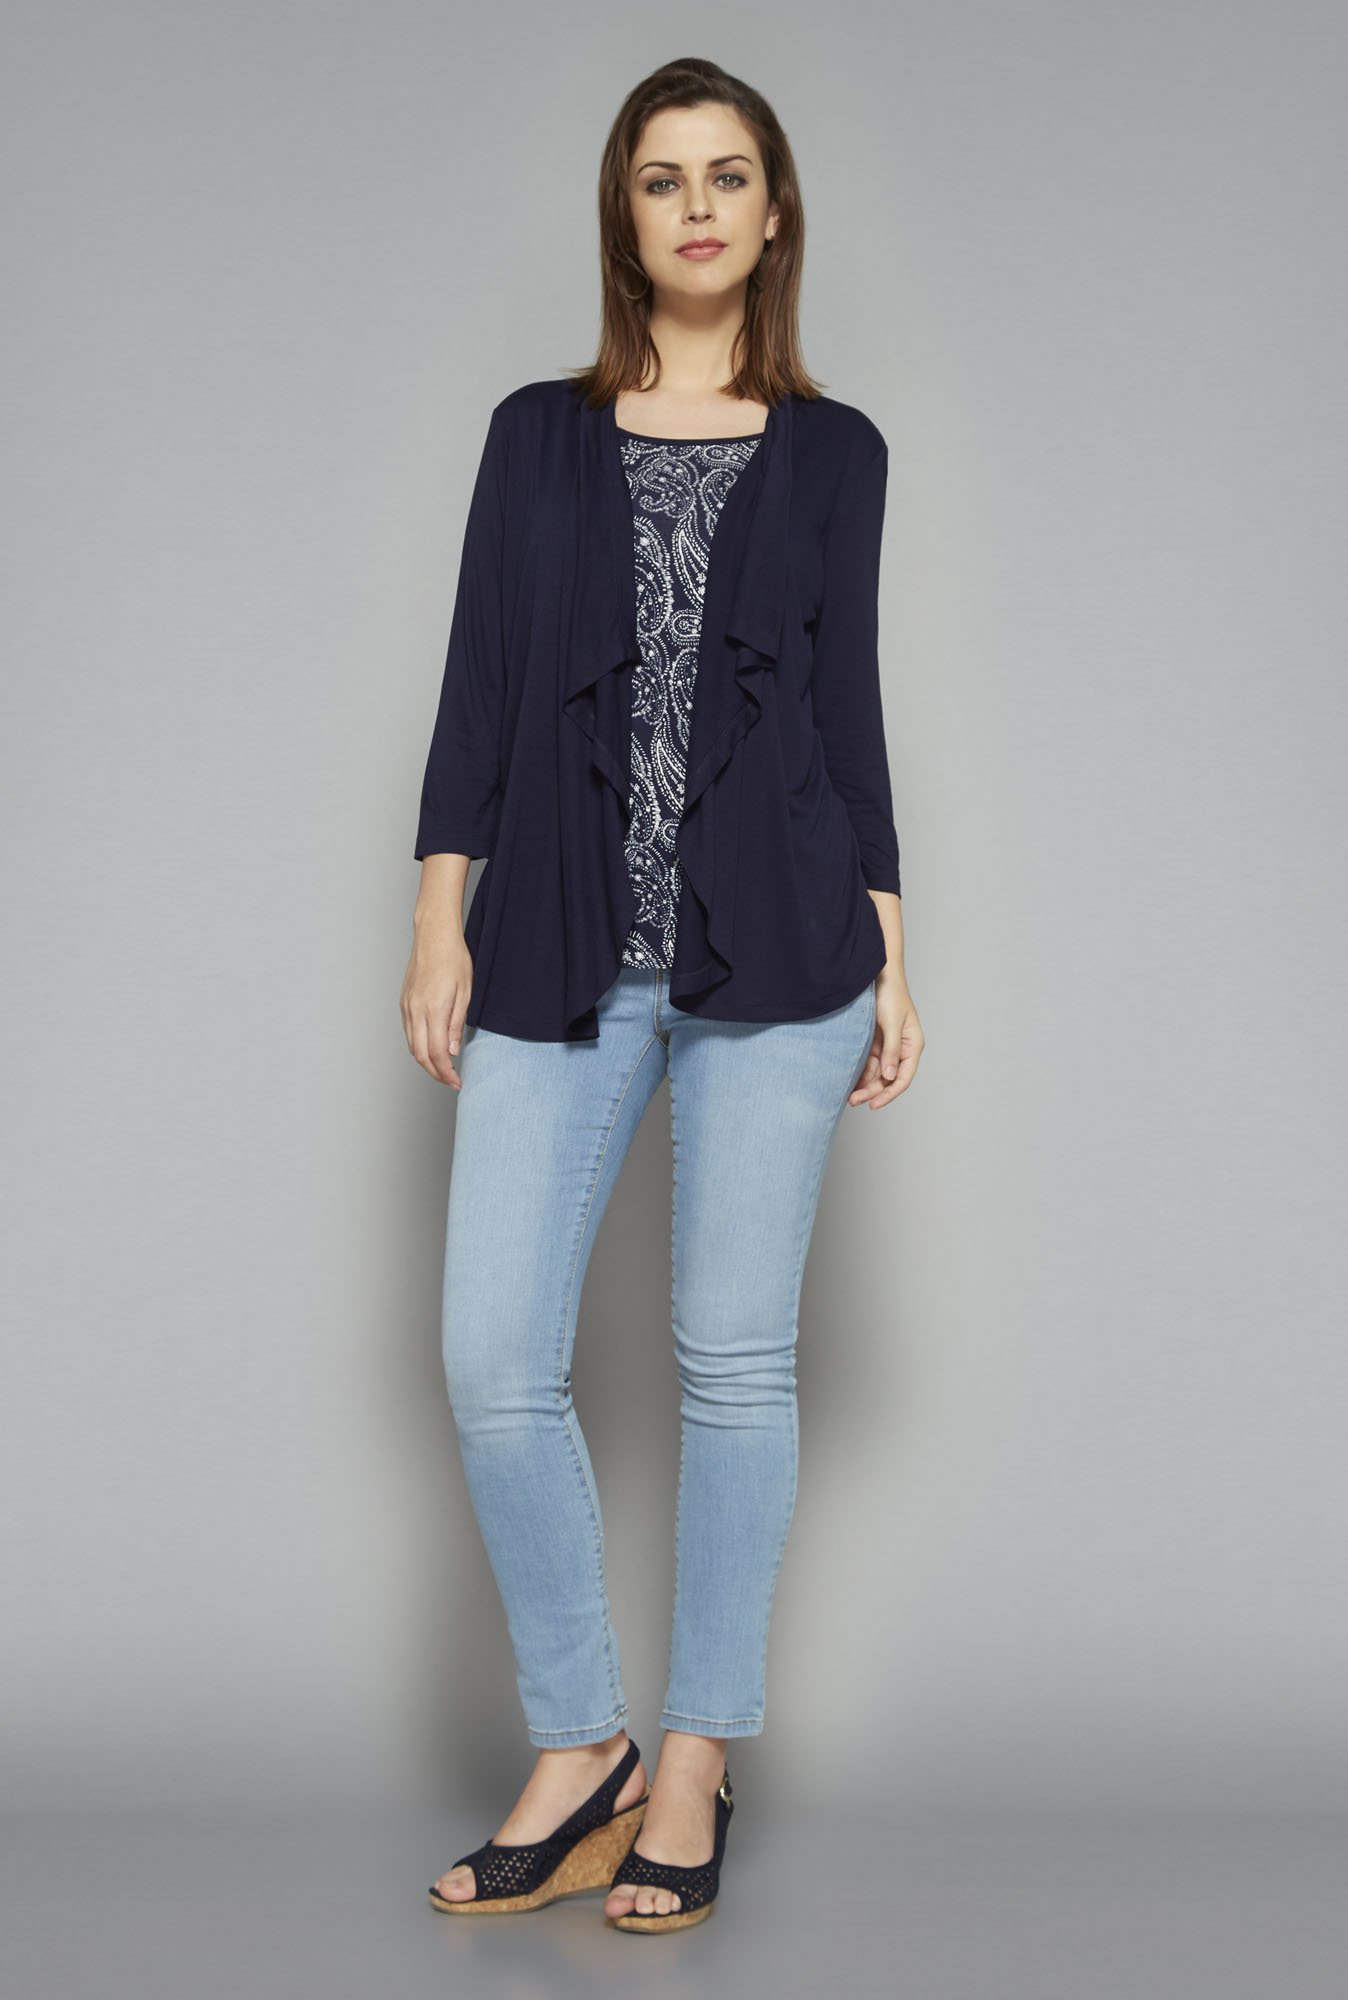 LOV by Westside Navy Zola Top